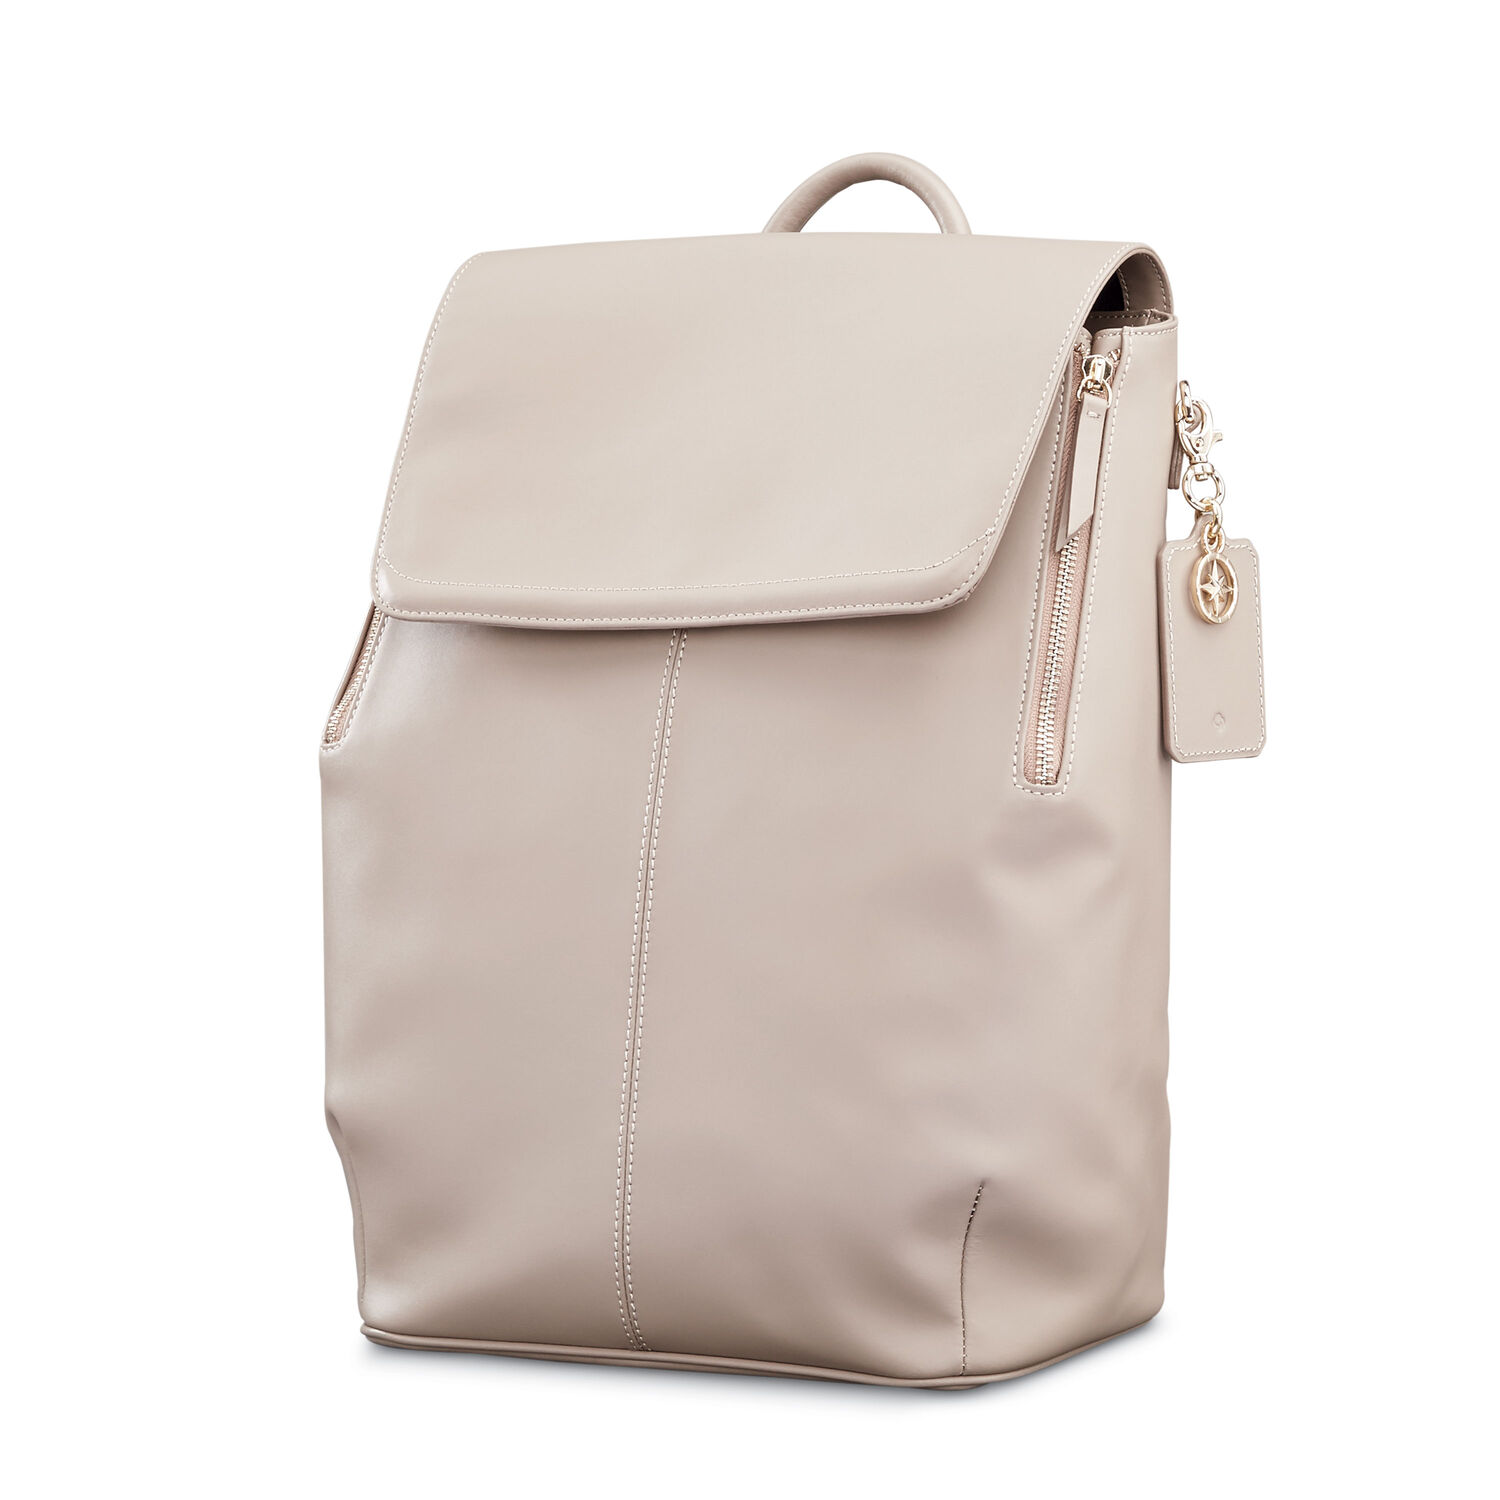 bb147691b361 Samsonite Ladies Leather Hamptons Backpack in the color Light Grey.